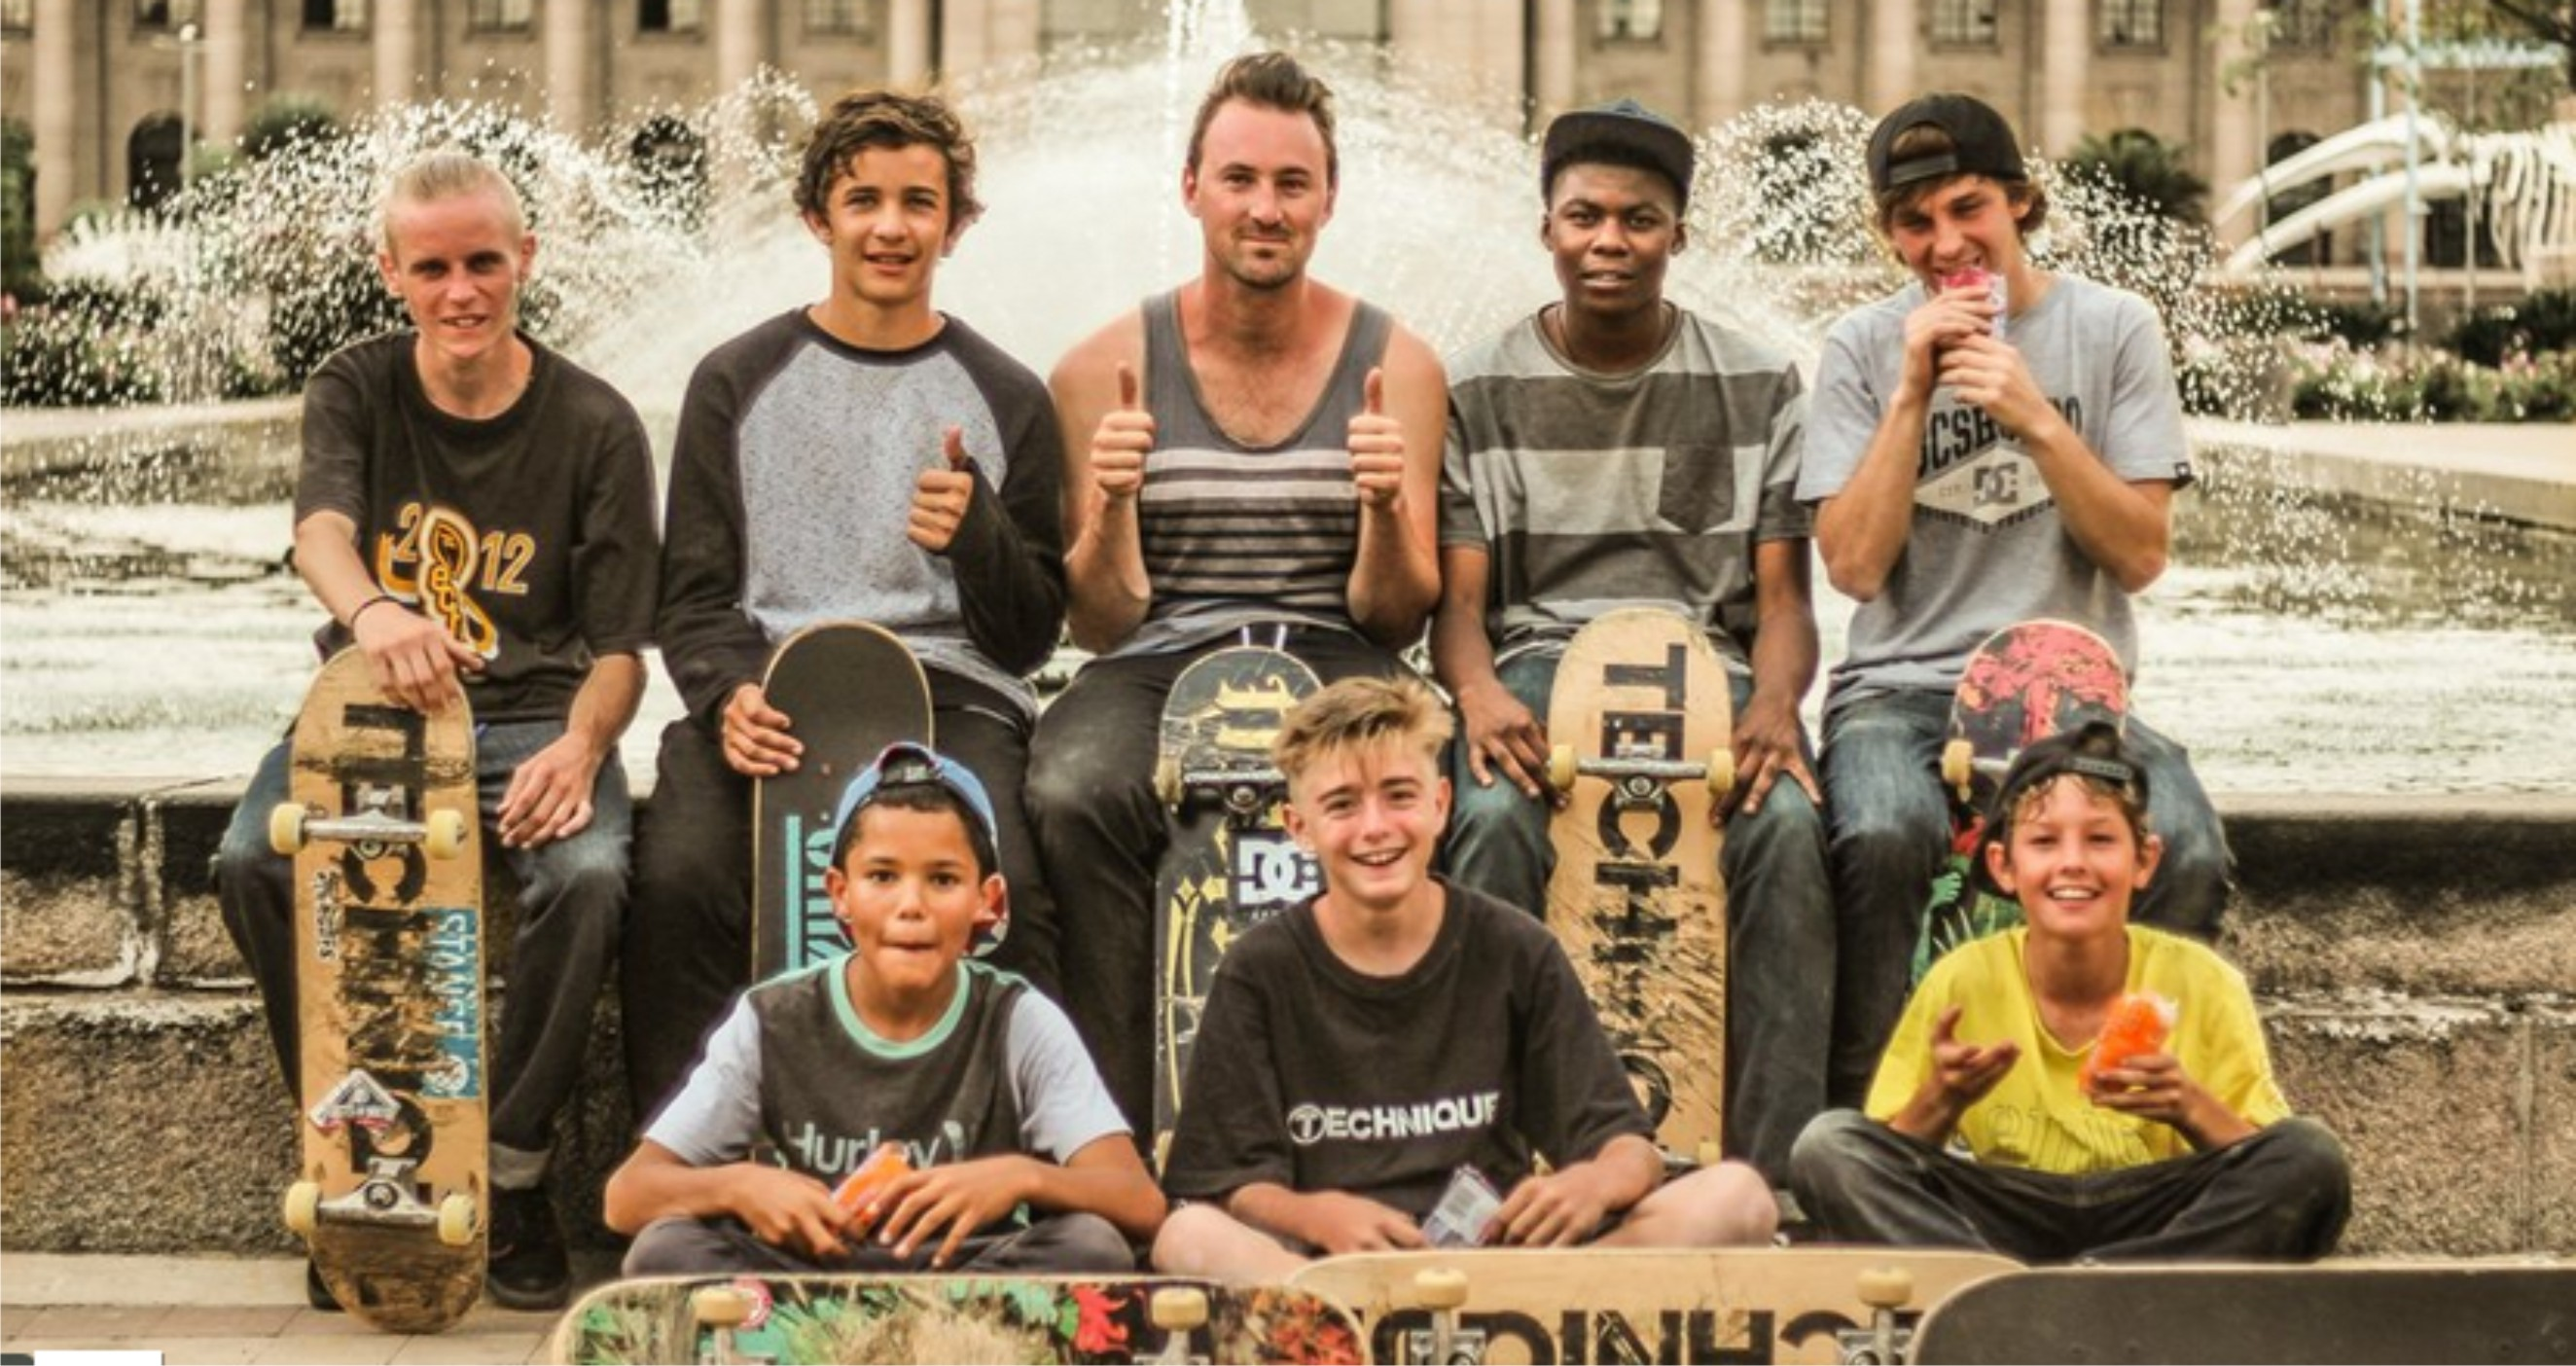 Watch some top class Skateboarding in the Technique Skateboards DPD Webisode 4 Gauteng Underdogs